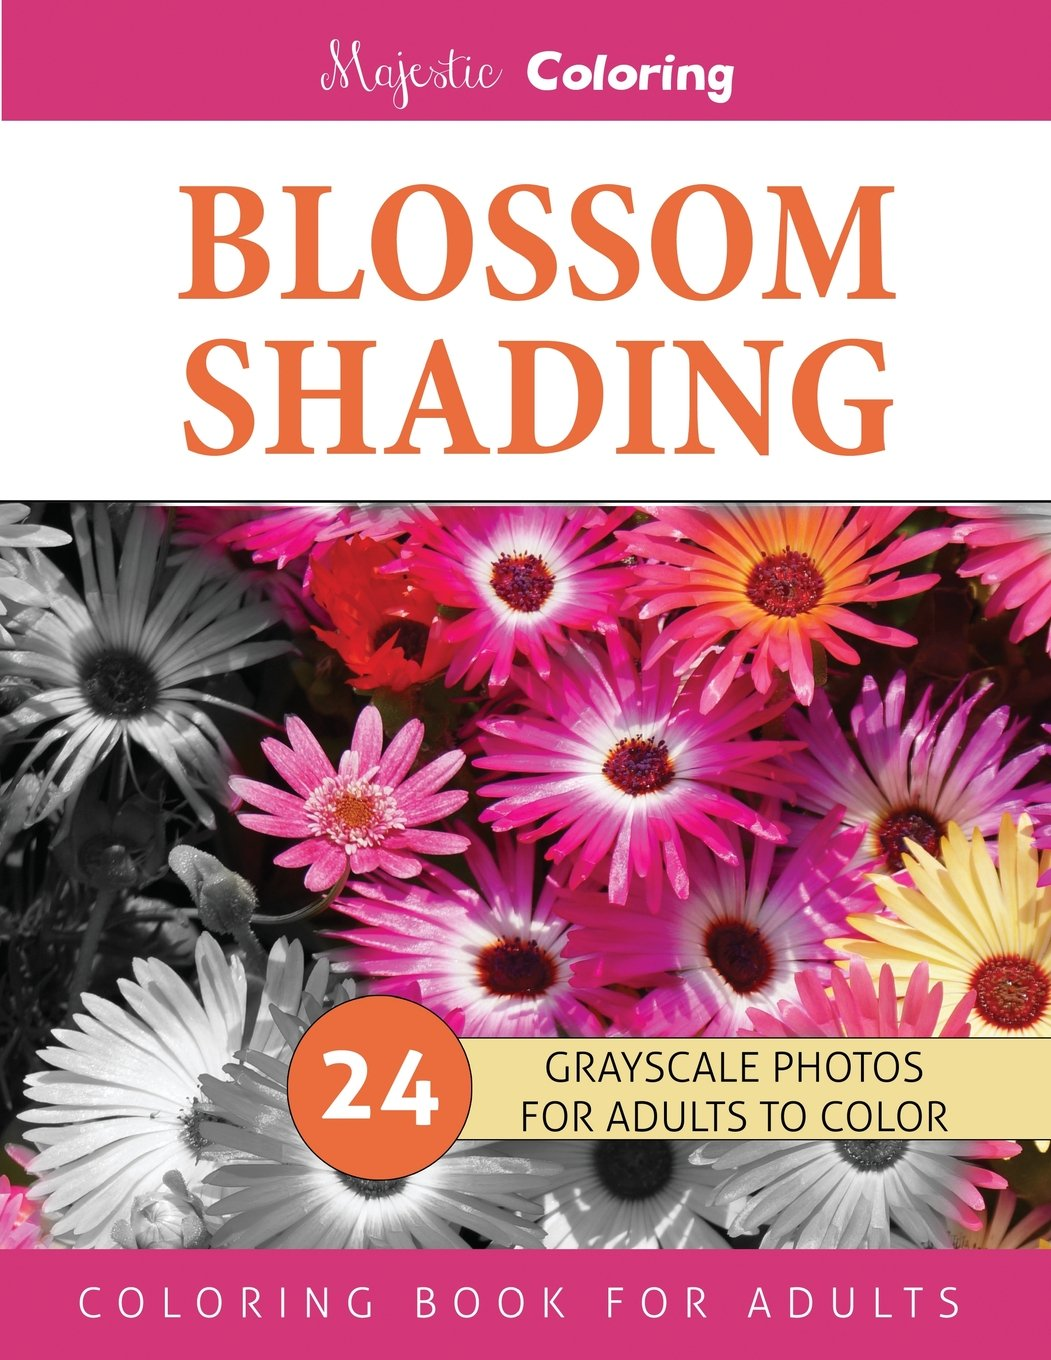 blossom shading grayscale photo coloring book for grown ups floral fantasy coloring volume 2 majestic coloring 9781519688910 amazoncom books